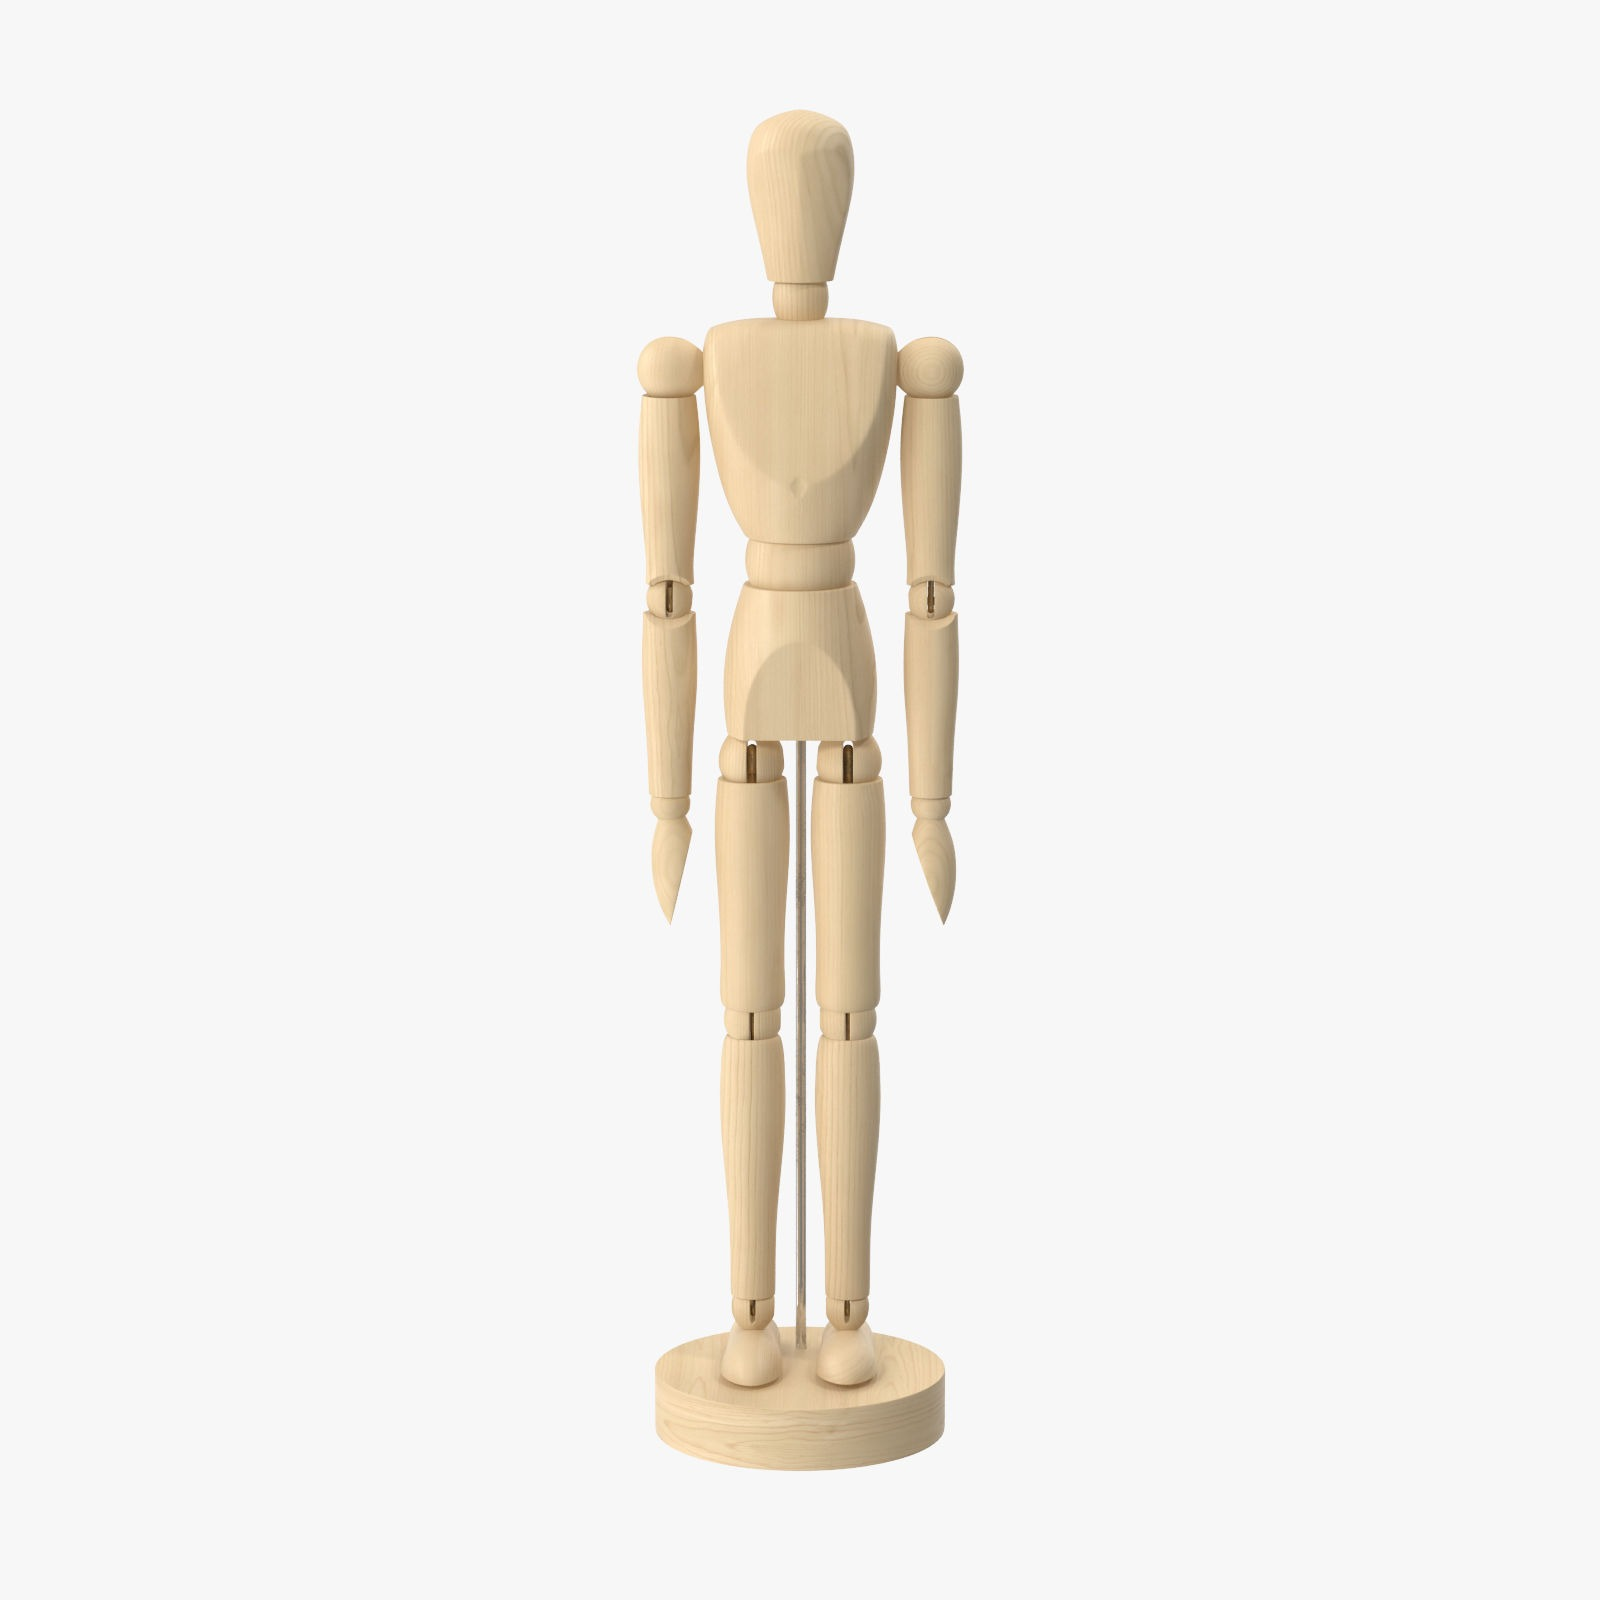 Wooden Mannequin Rigged